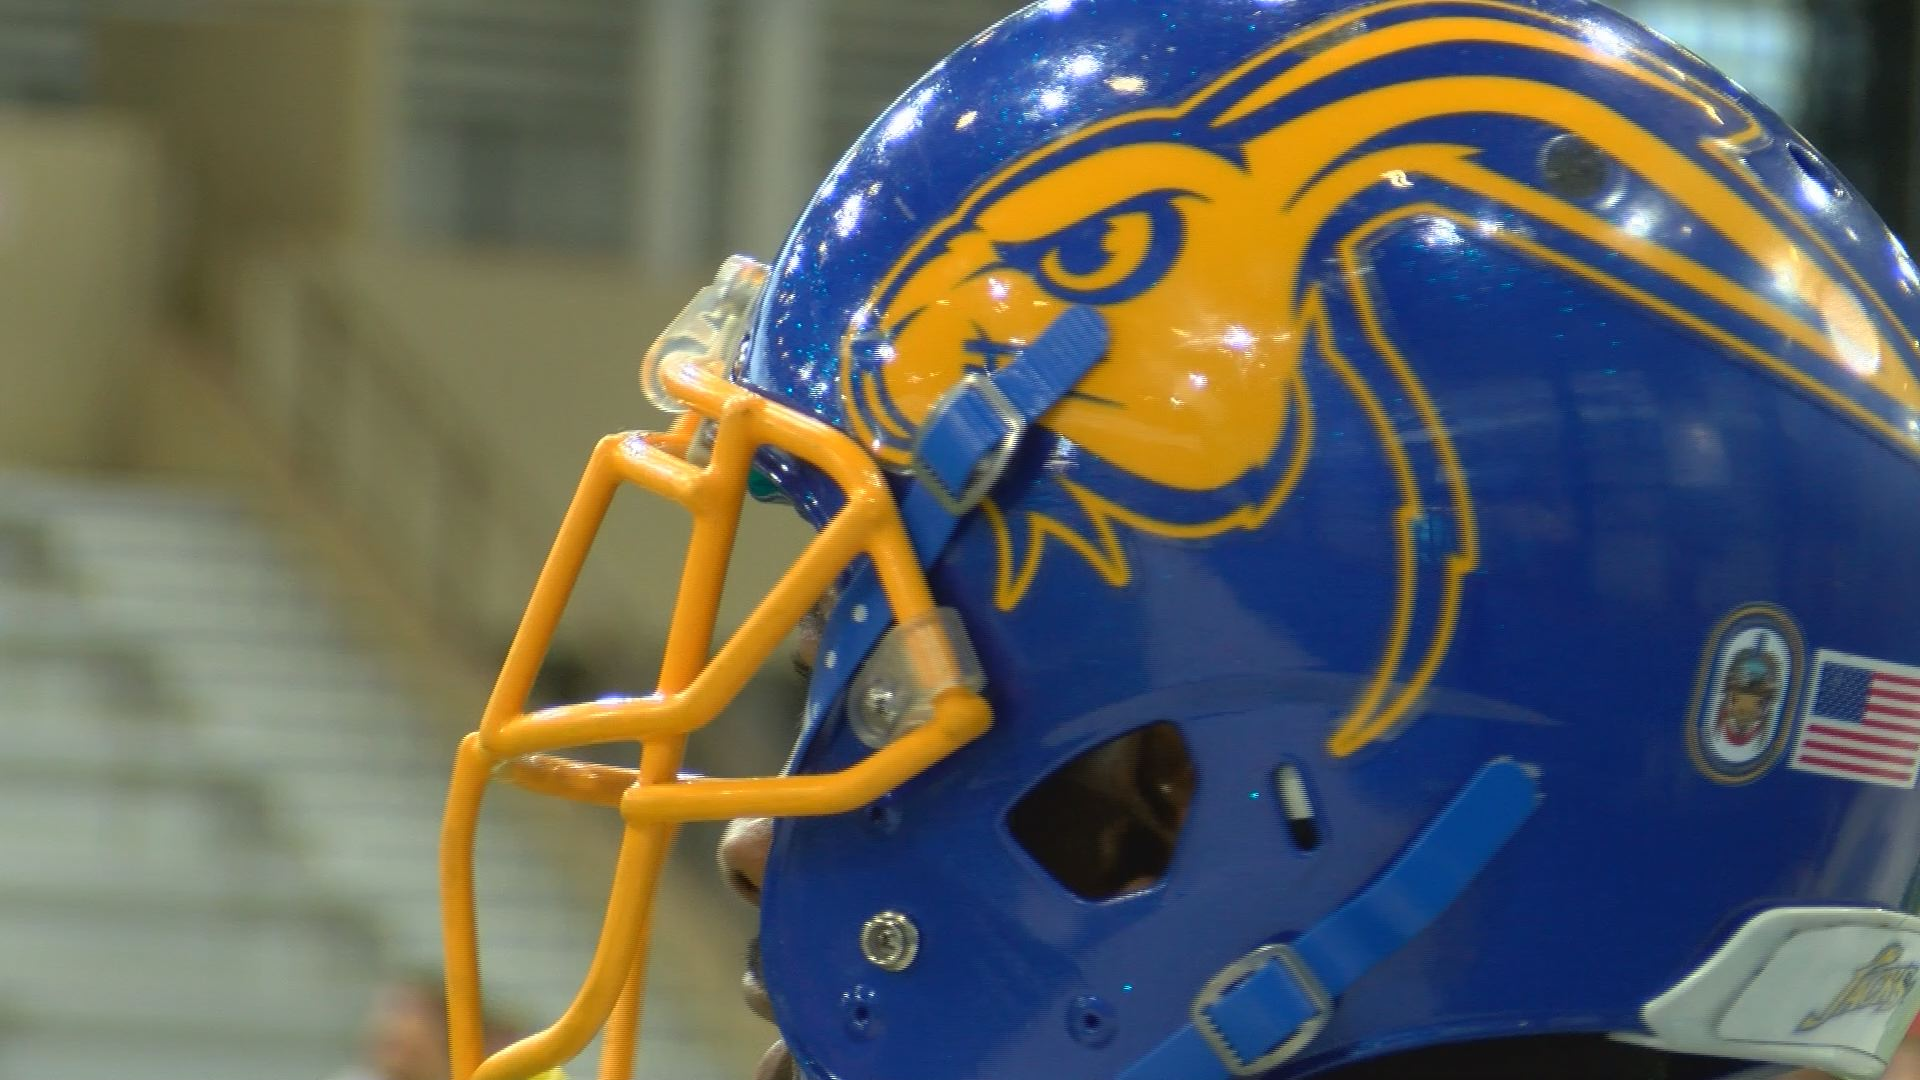 SDSU Football Helmet_1554242363496.jpg